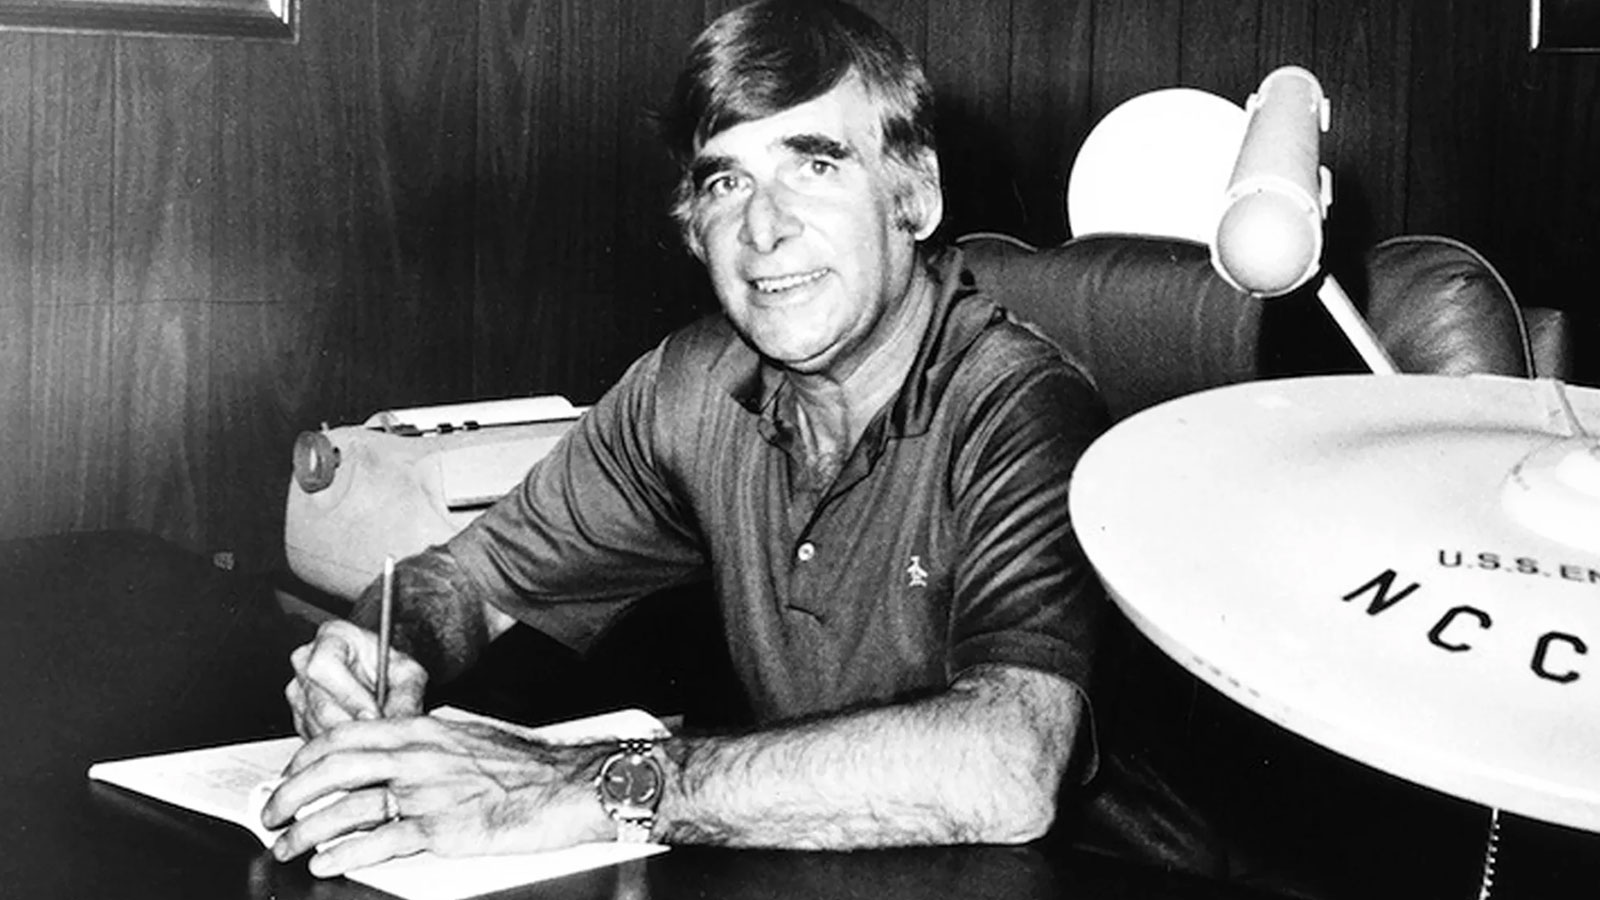 Gene Roddenberry's Life's Work To Be Digitized In Massive Preservation Project